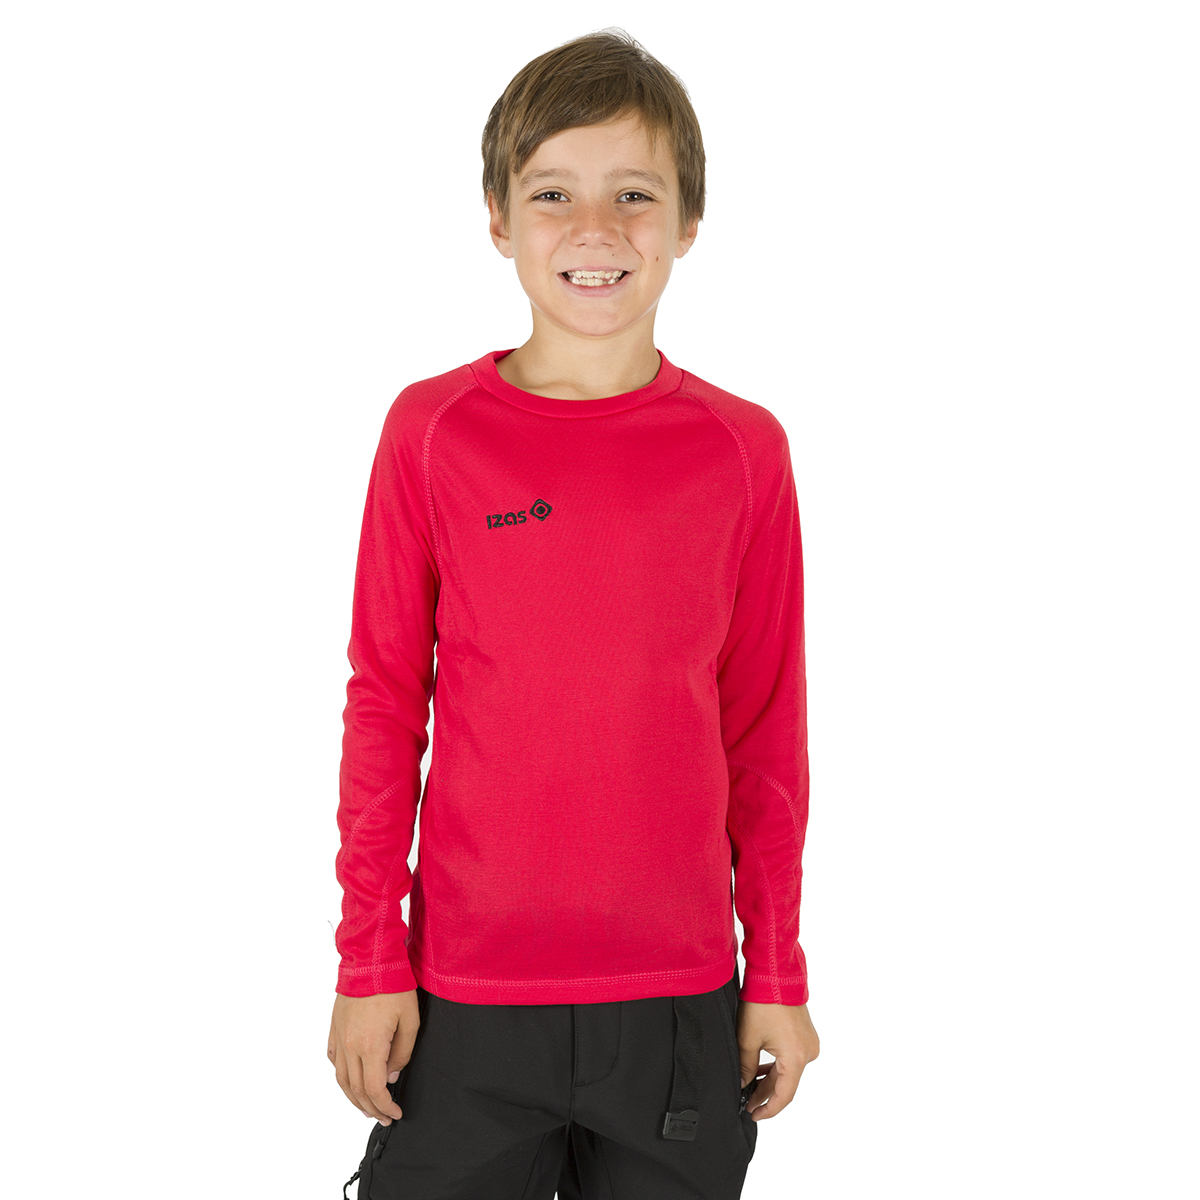 NELION KIDS THERMAL T-SHIRT RED